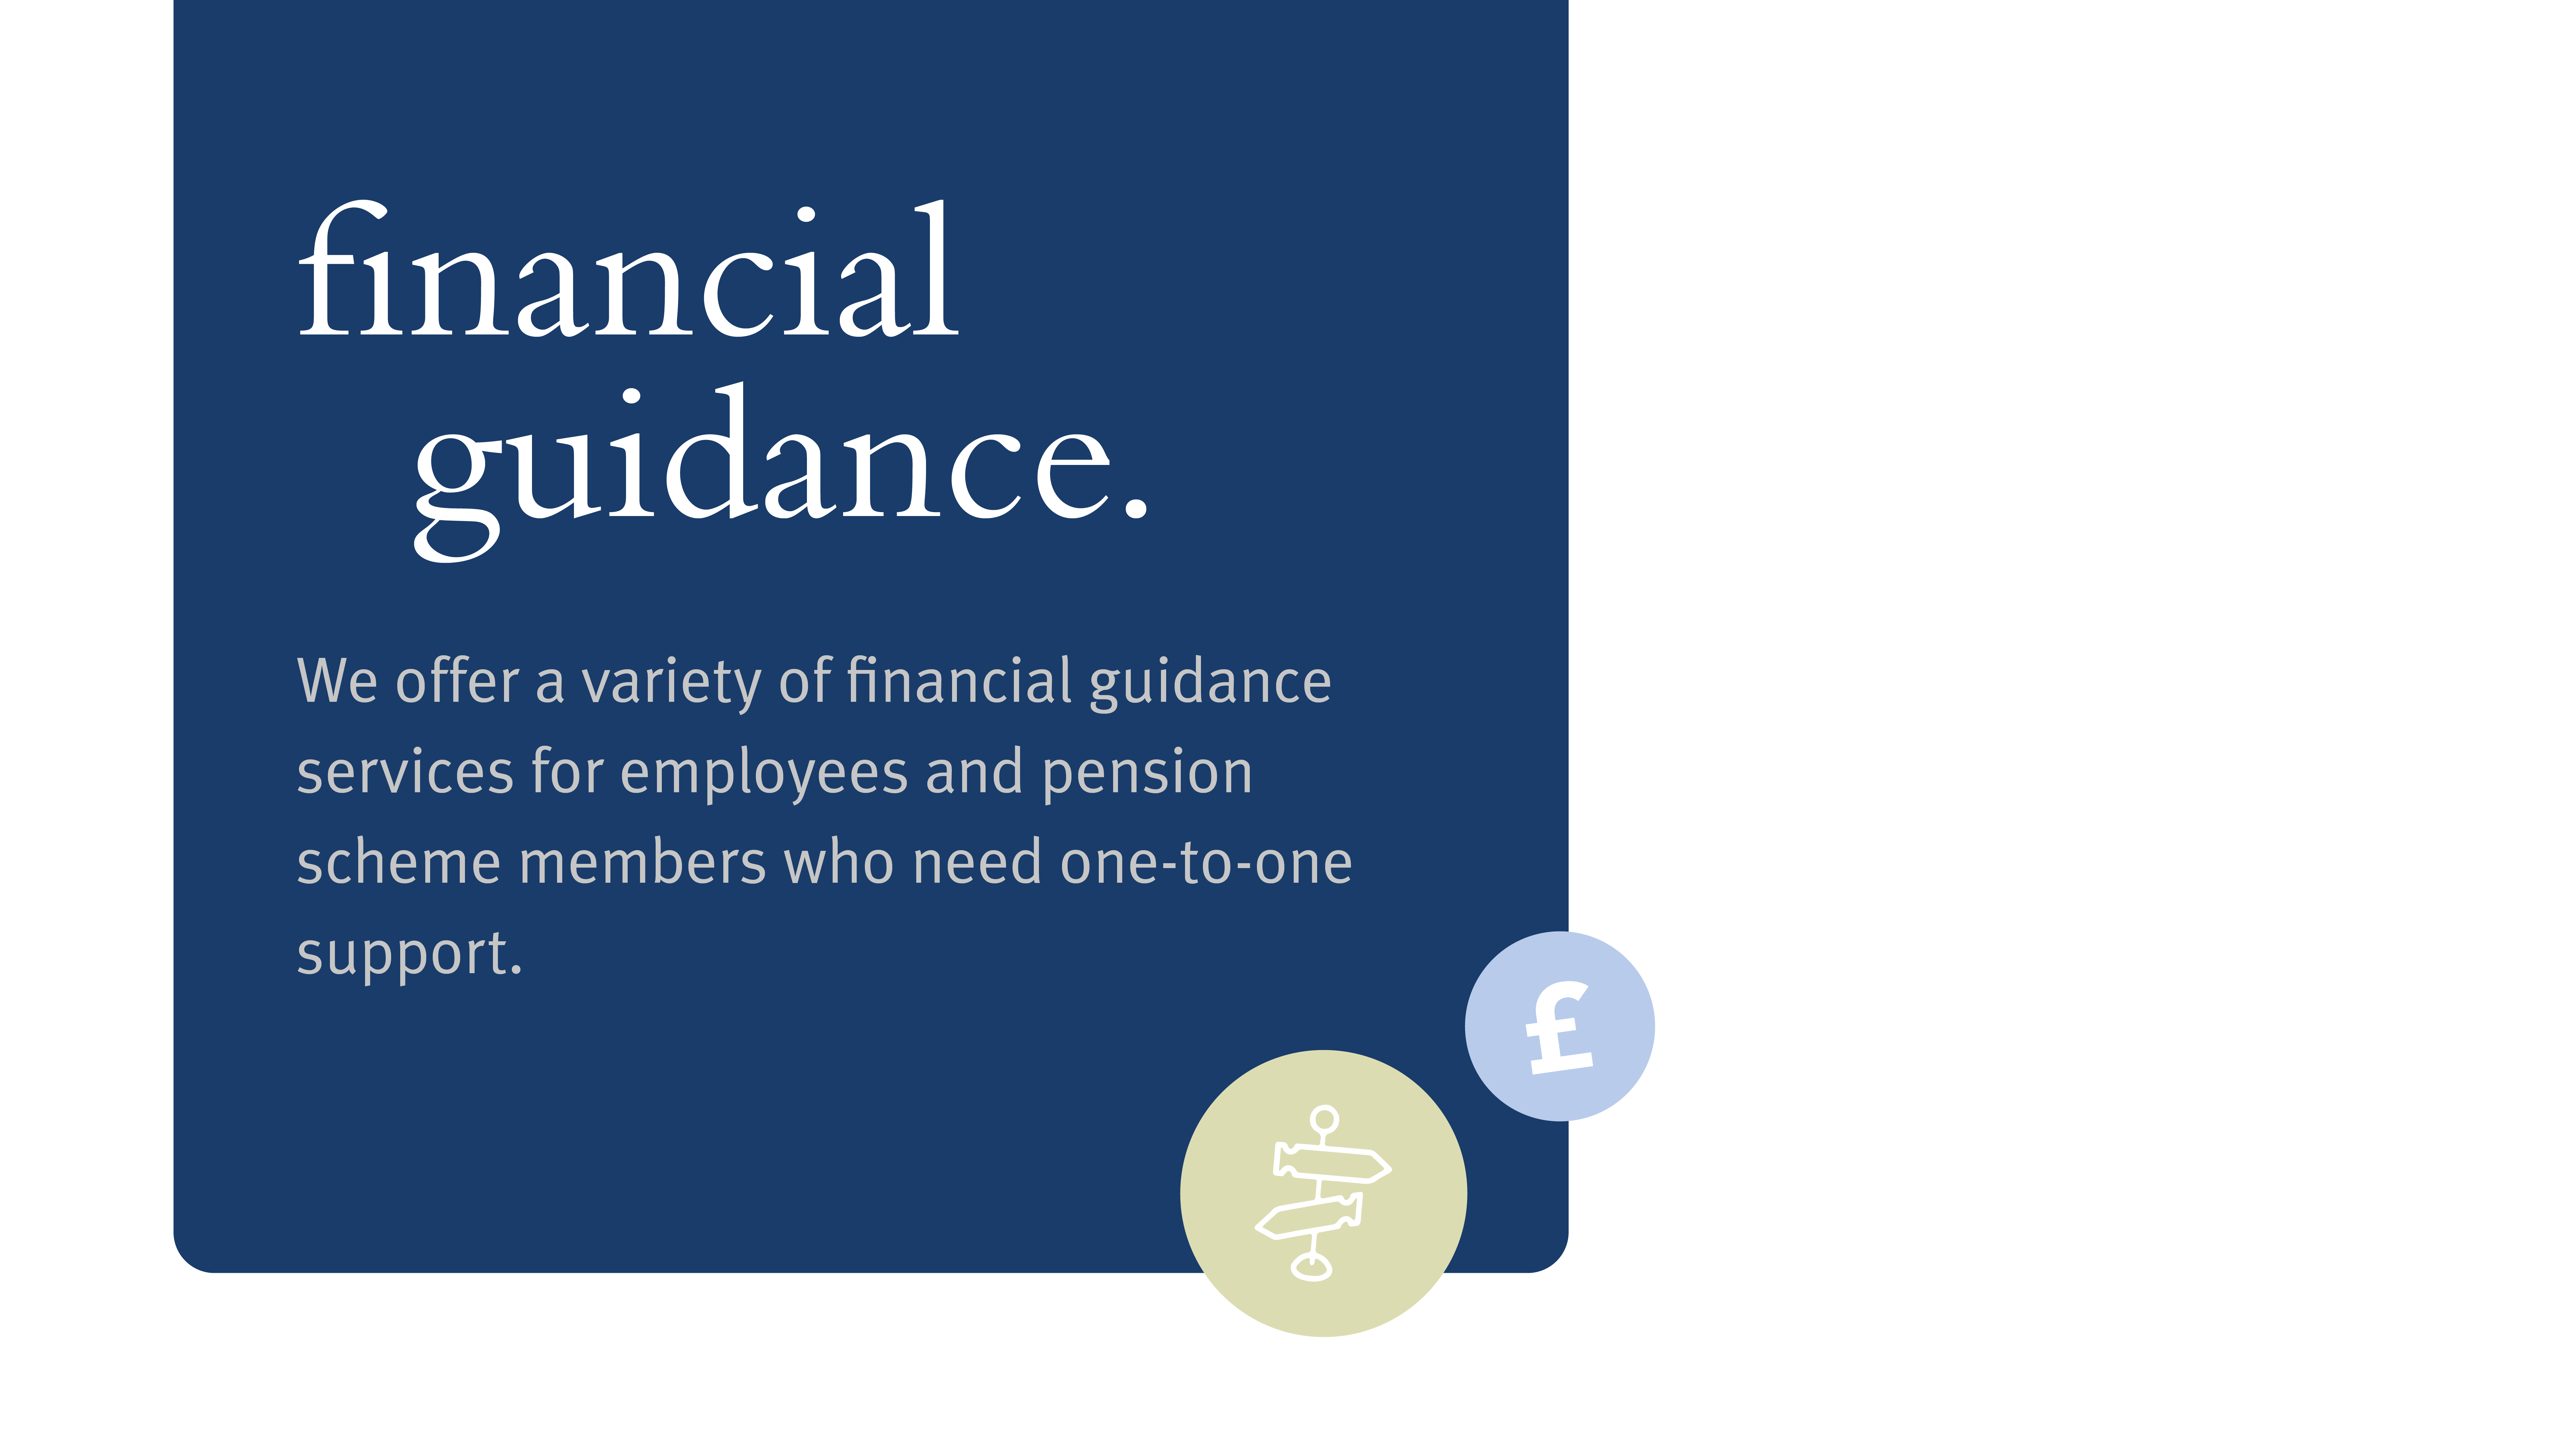 image reads: Financial Guidance. We offer a variety of financial guidance services for employees and pension scheme members who need one-to-one support.